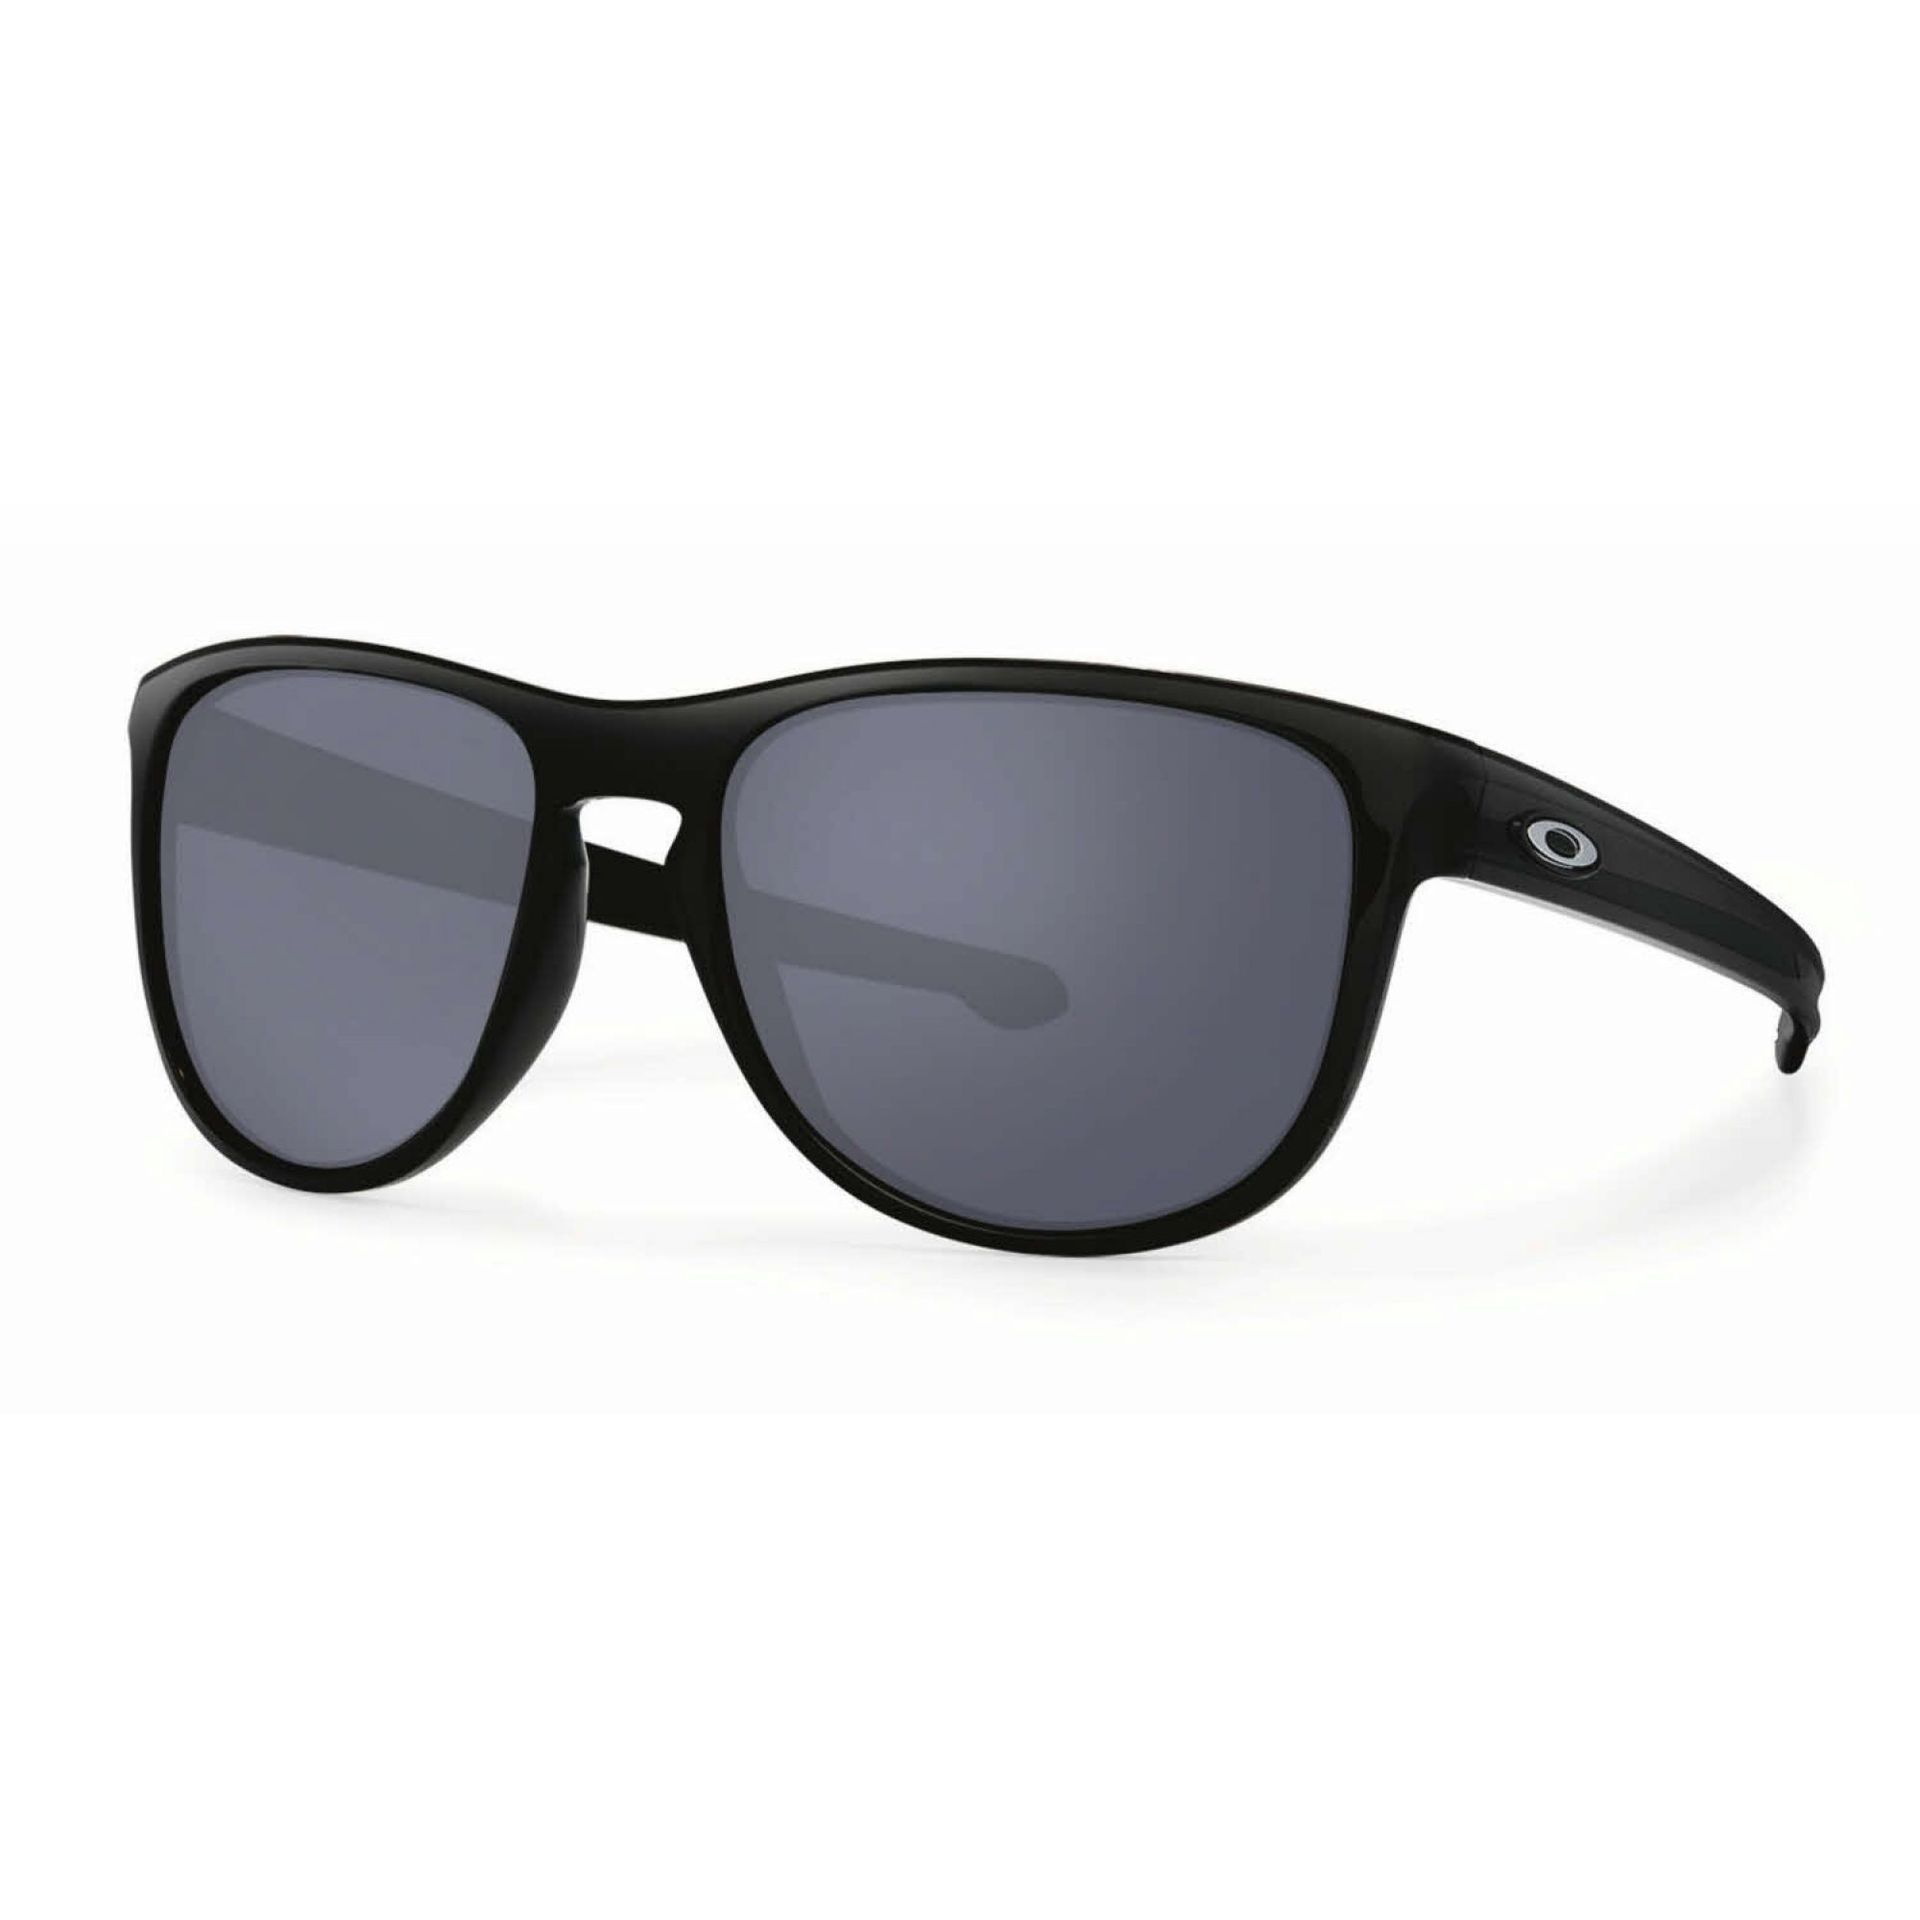 OKULARY OAKLEY SLIVER  R BLACK W GREY